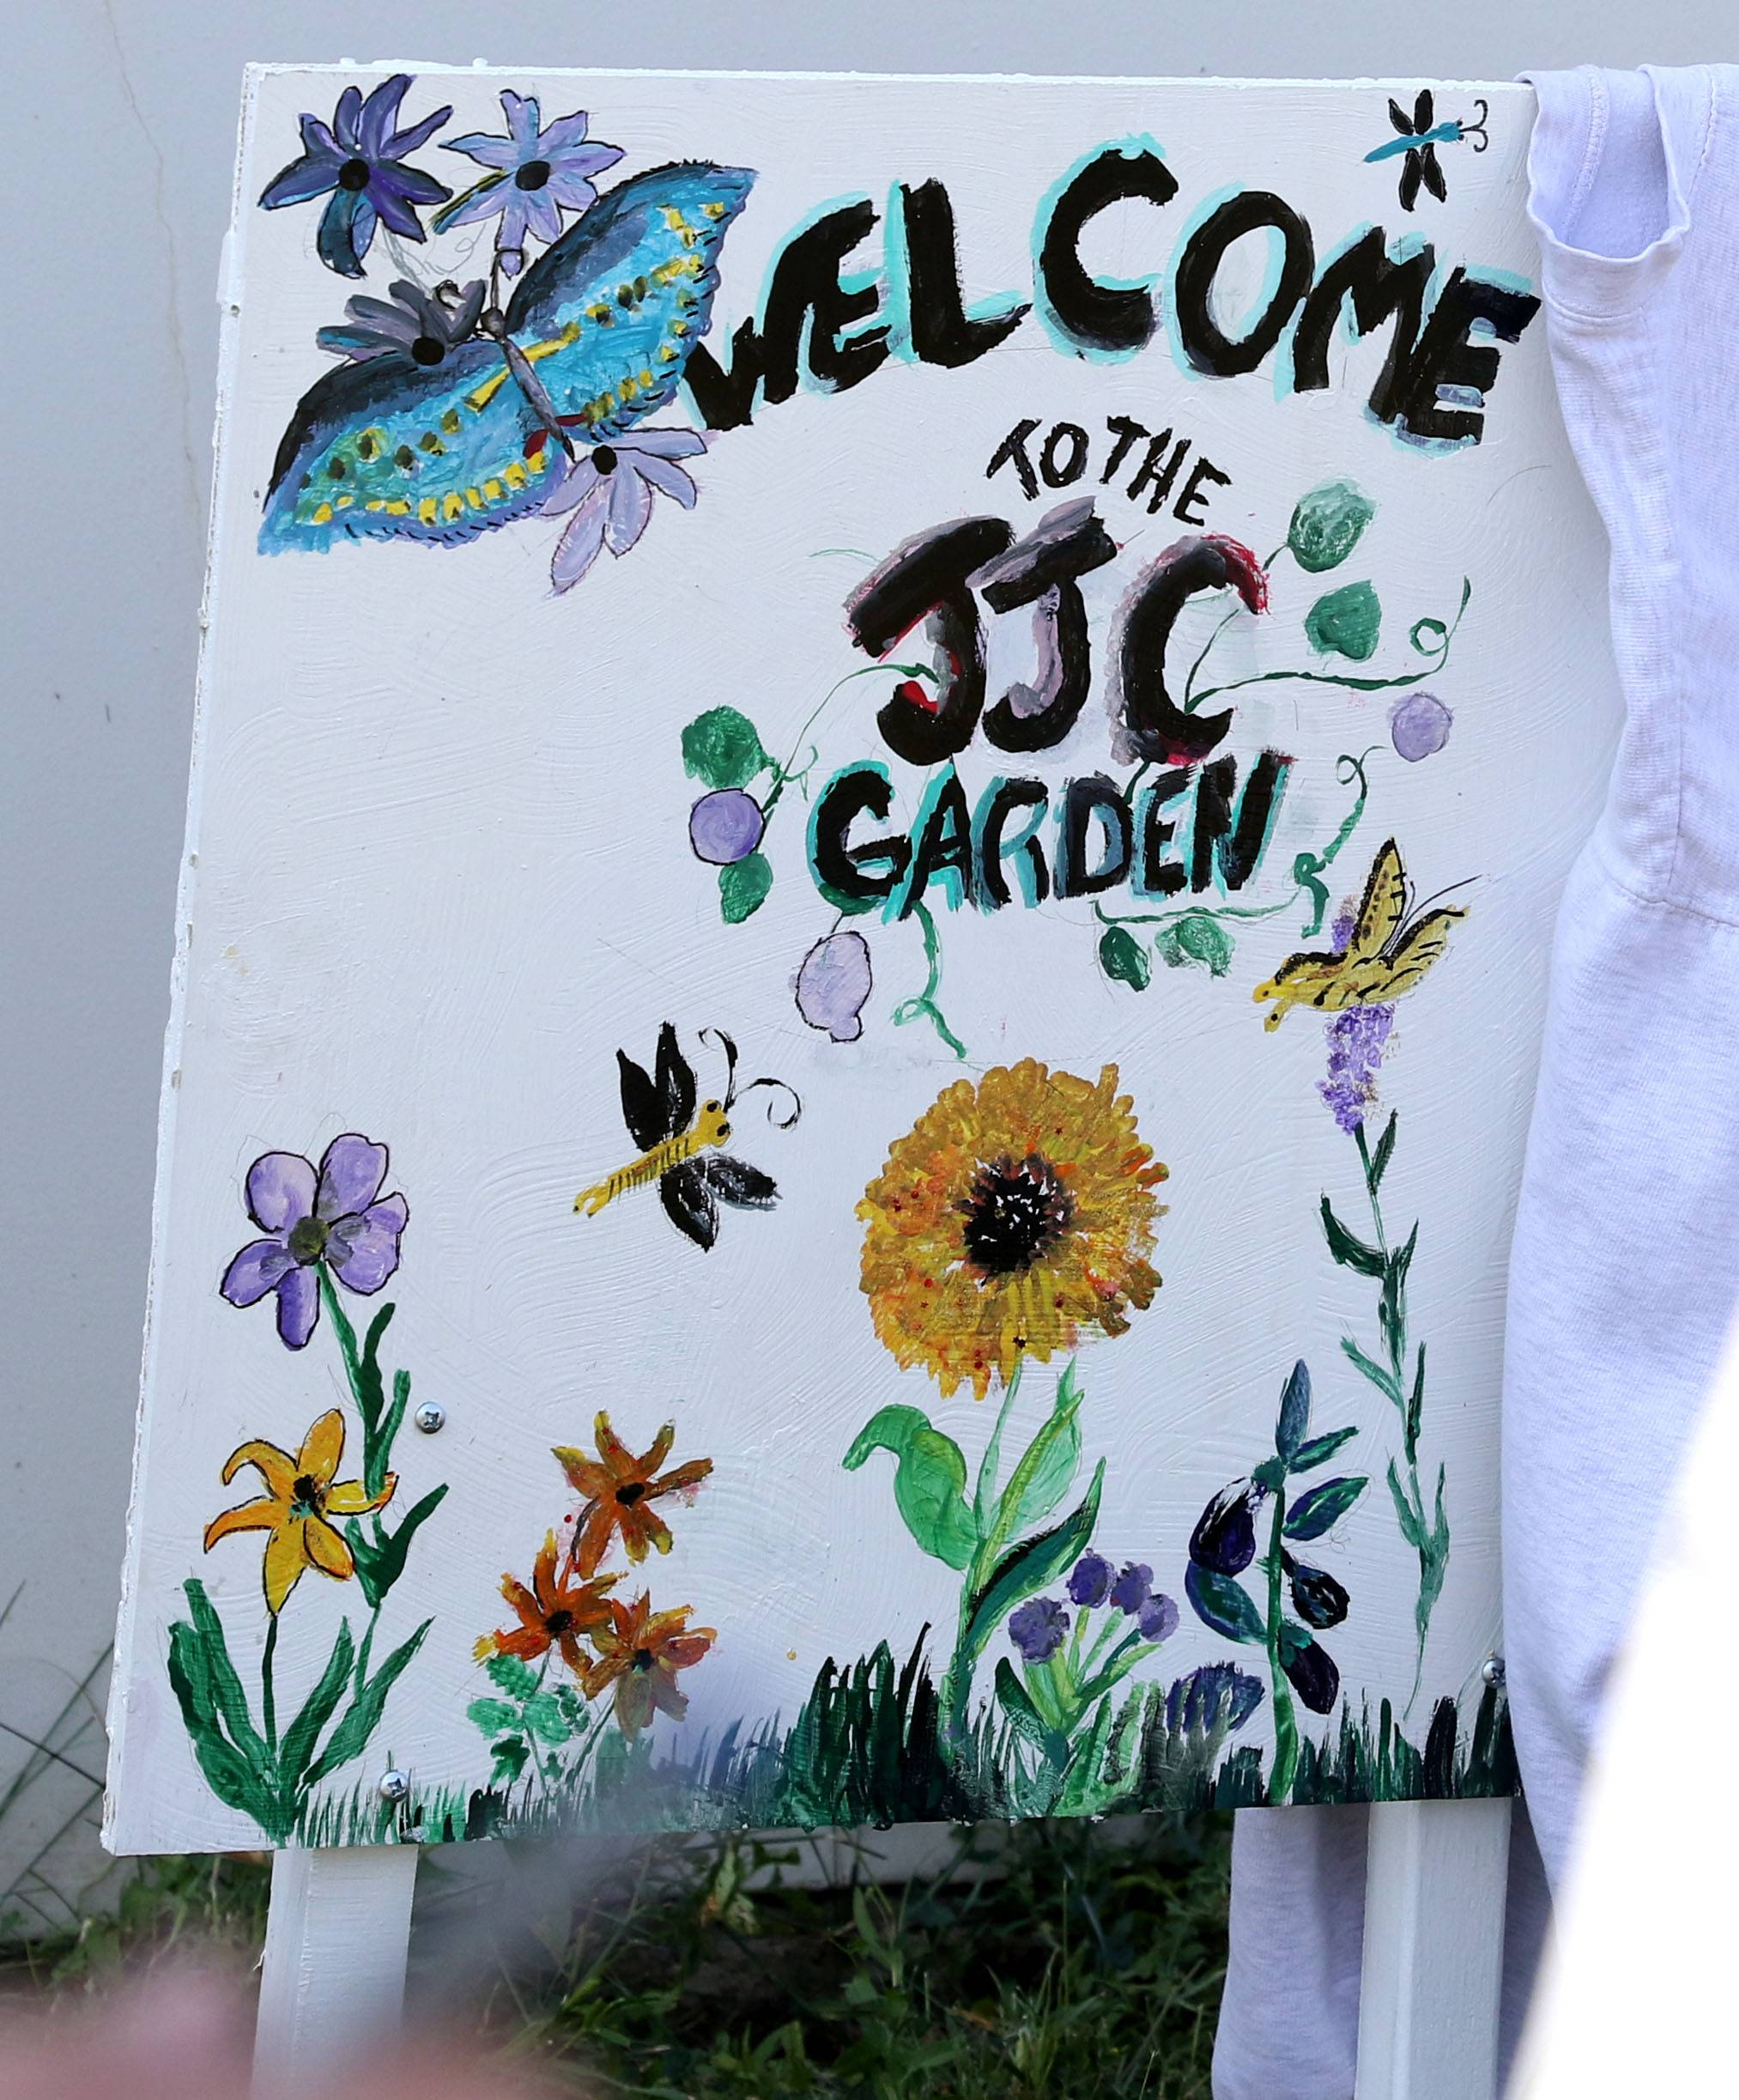 "Detainees at the Kane County Juvenile Justice Center earn the privilege to help tend a garden on the premises. A sign welcomes detainees to the area. The center's program manager, Pam Ely, says touches like the handmade sign help to make the area feel ""less institutional."""